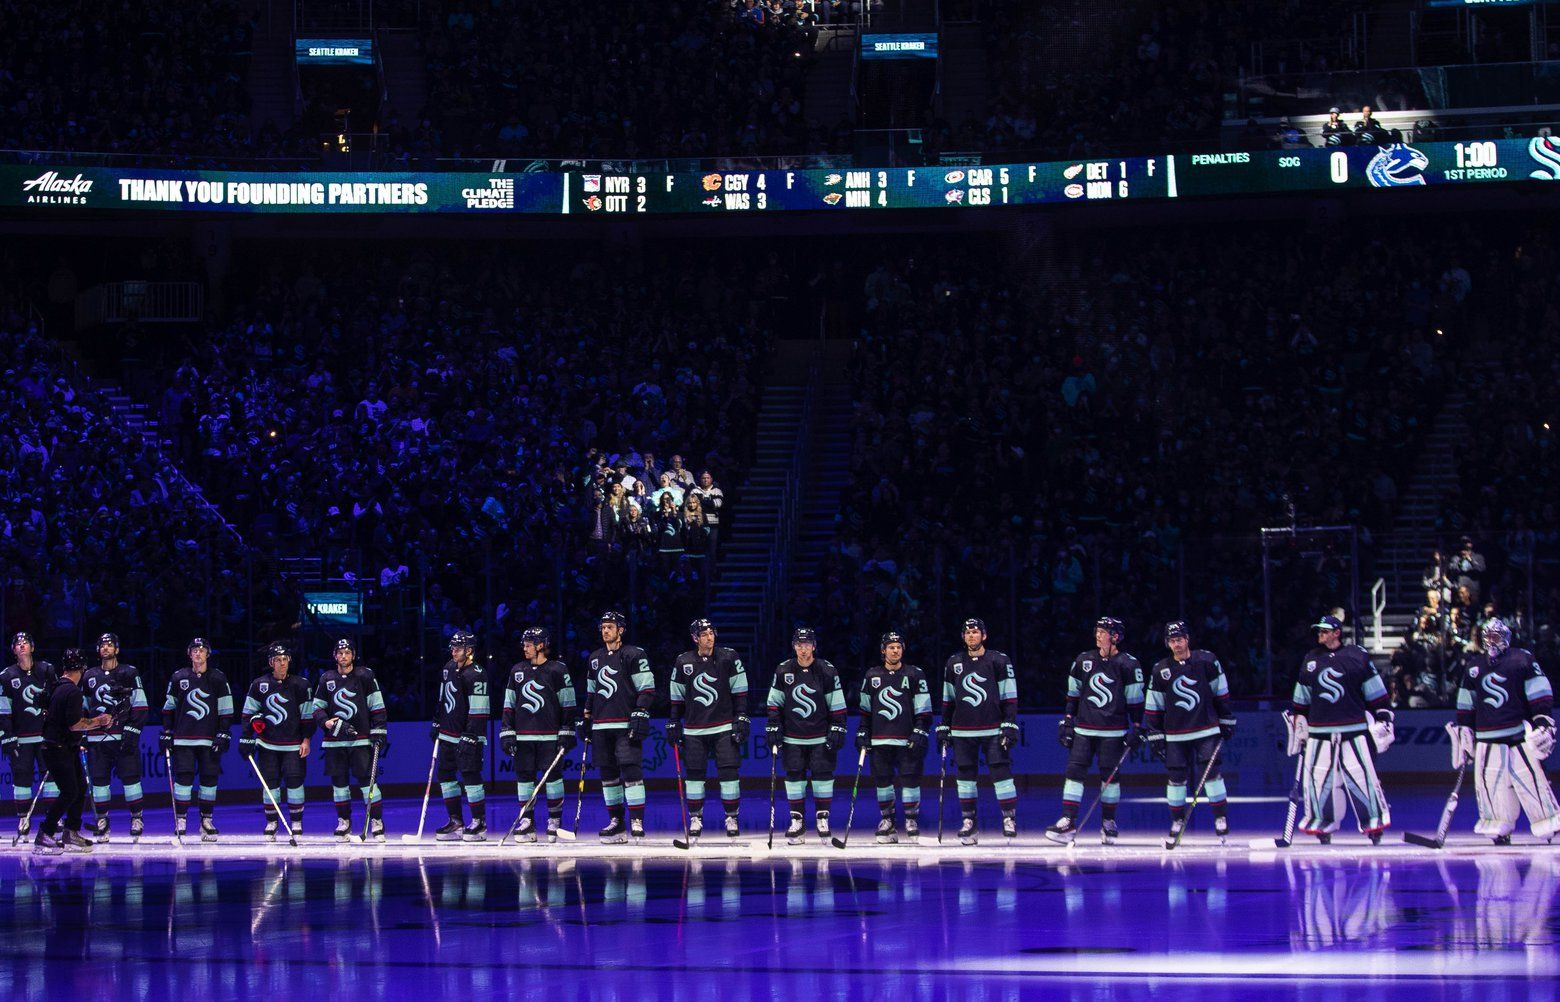 seattletimes.com - Geoff Baker - NHL's new national TV deal didn't do Kraken fans at home any favors in team's Seattle debut